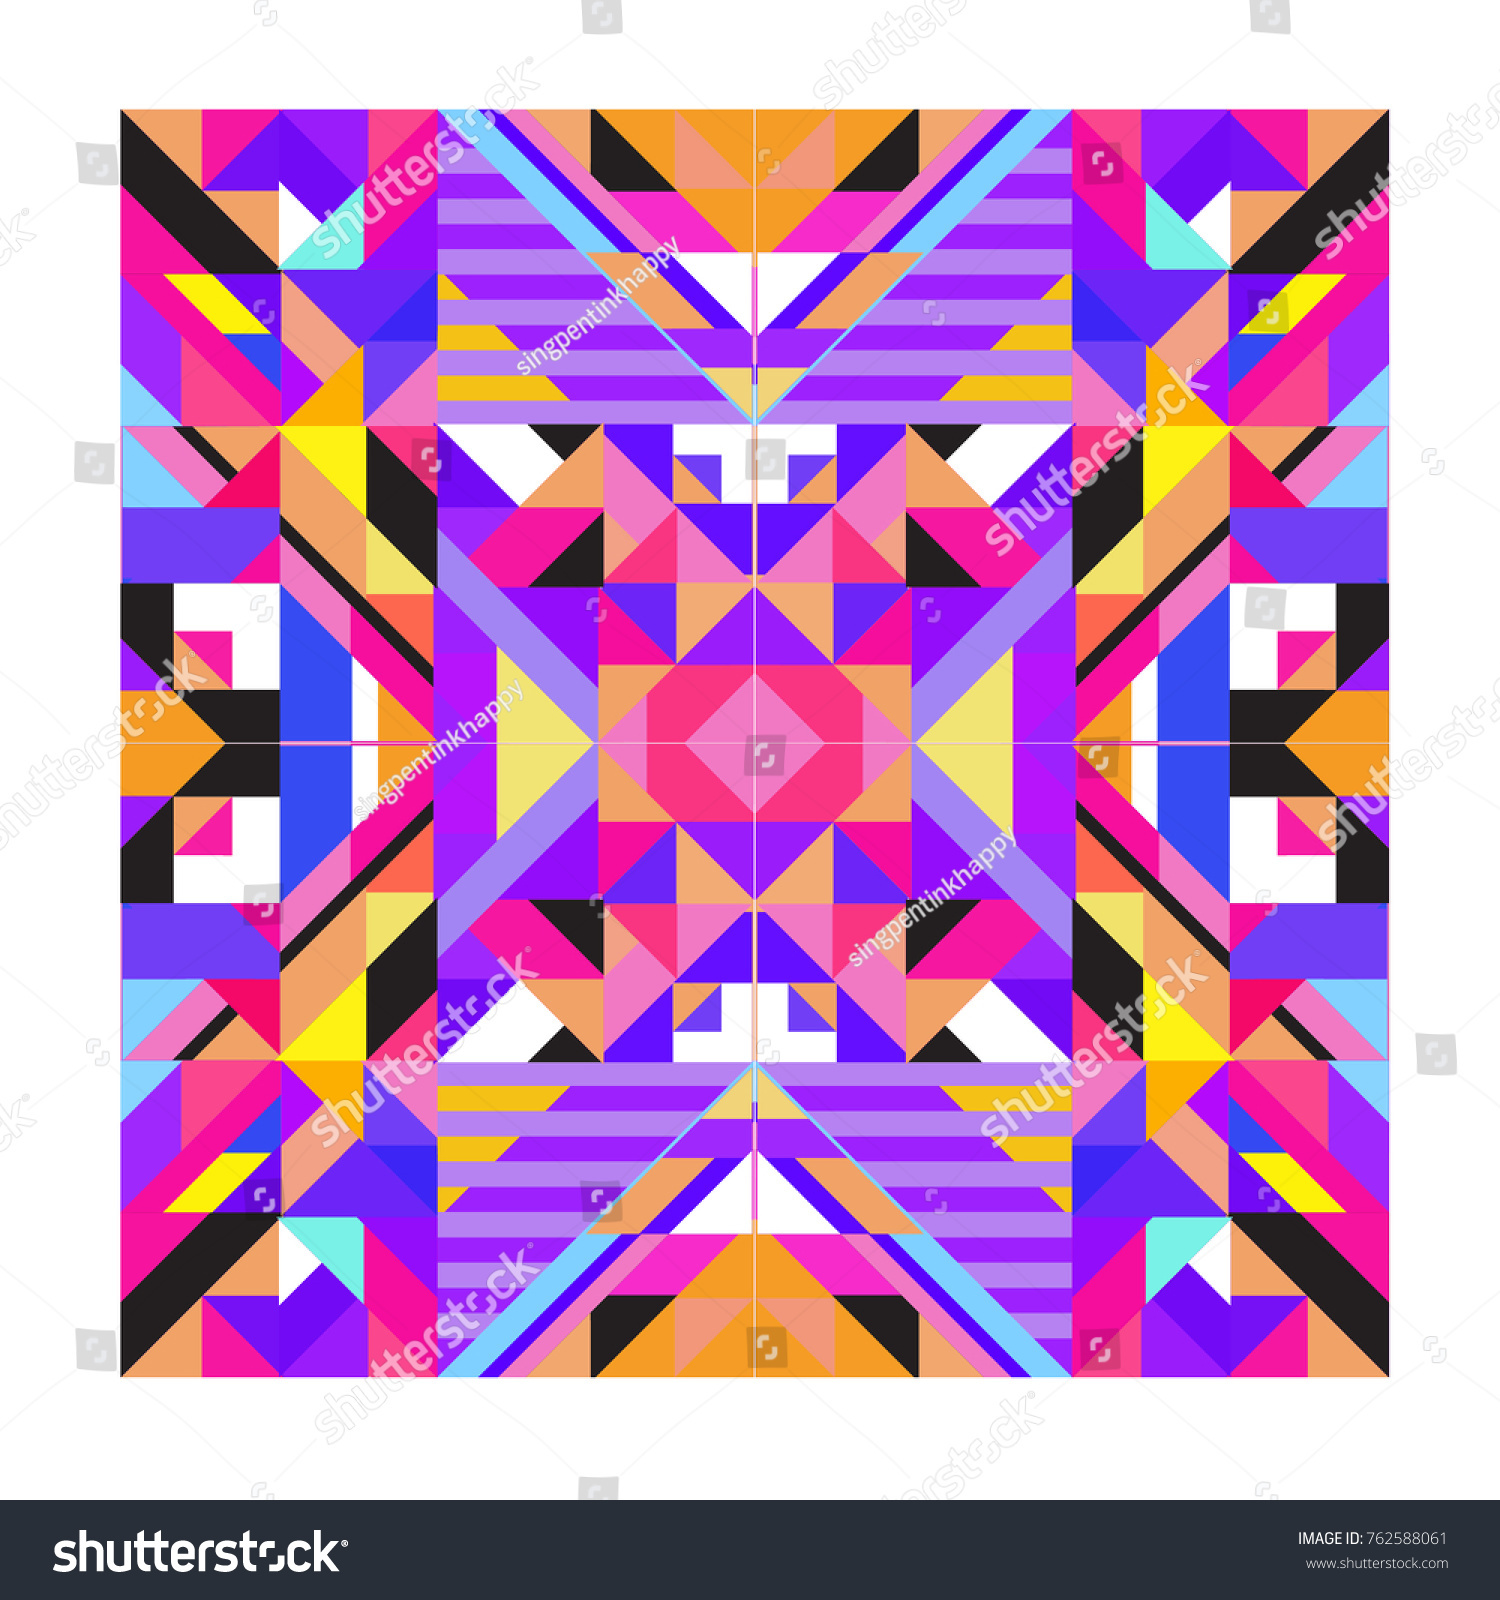 Trendy Geometric Elements Memphis Pattern Retro Style Texture, Pattern And